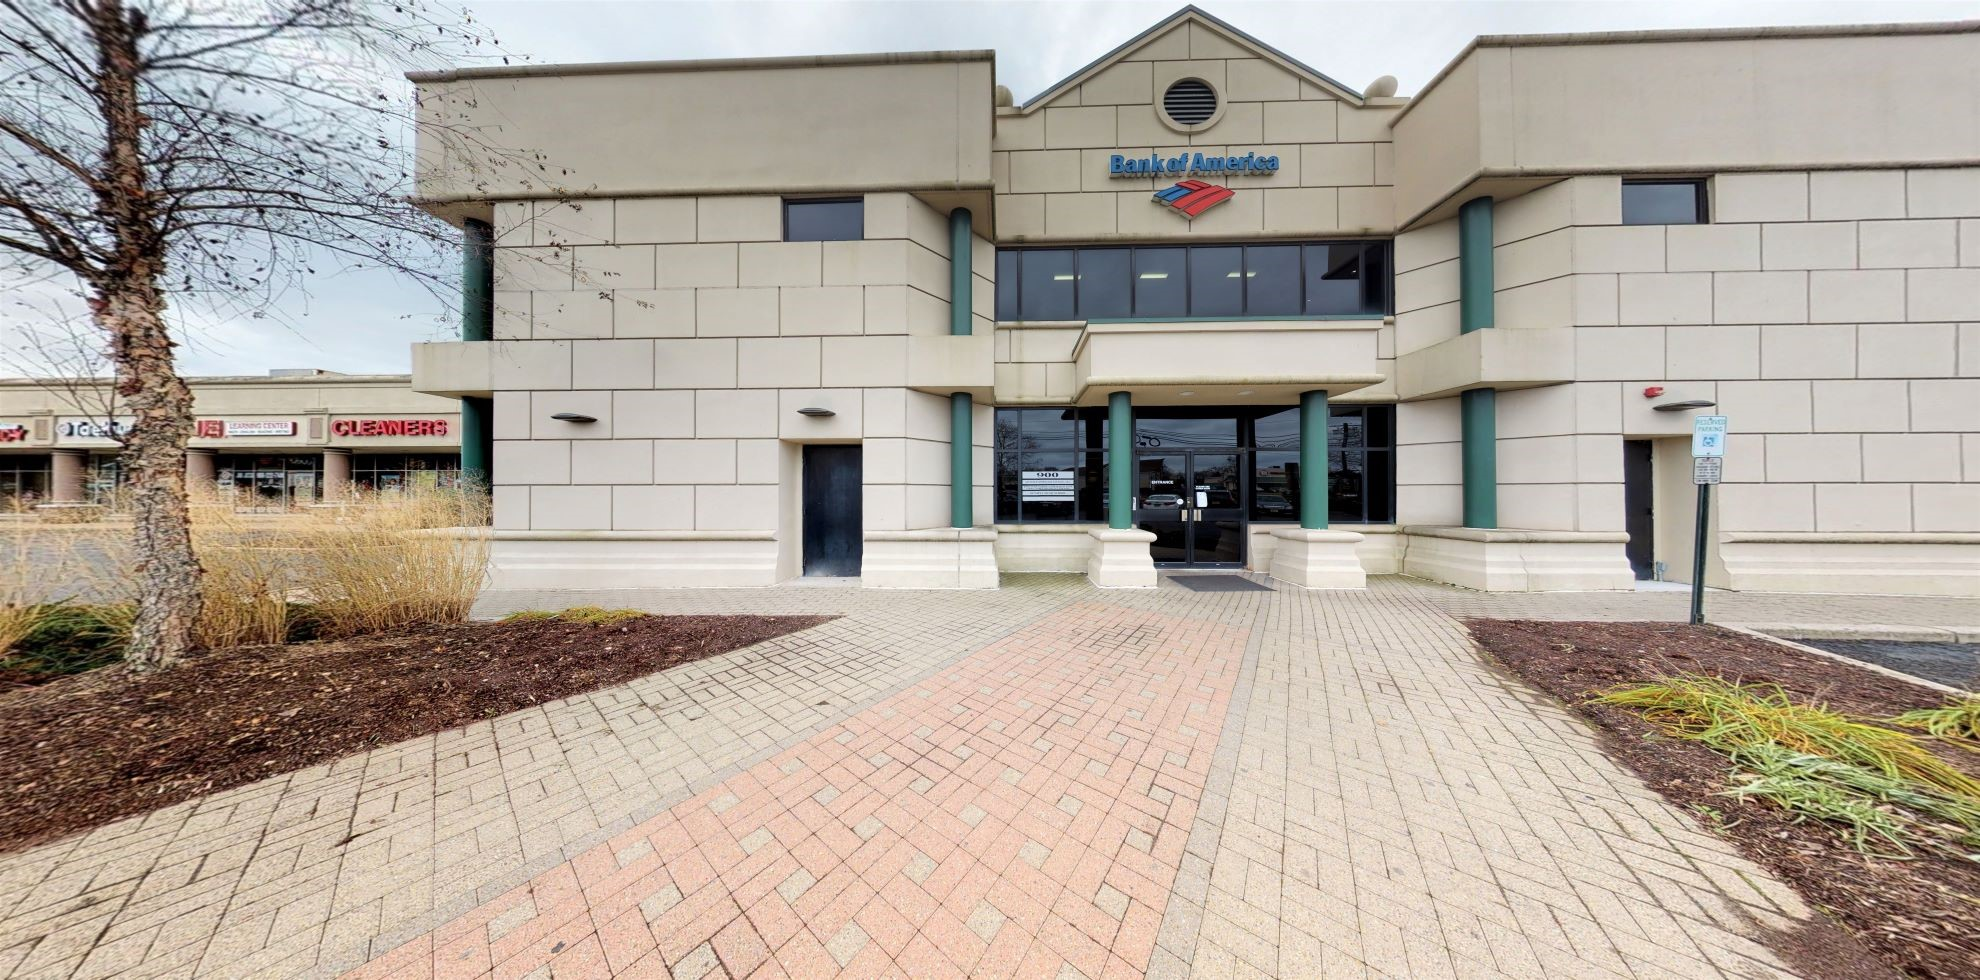 Bank of America financial center with drive-thru ATM | 900 Oak Tree Ave, South Plainfield, NJ 07080